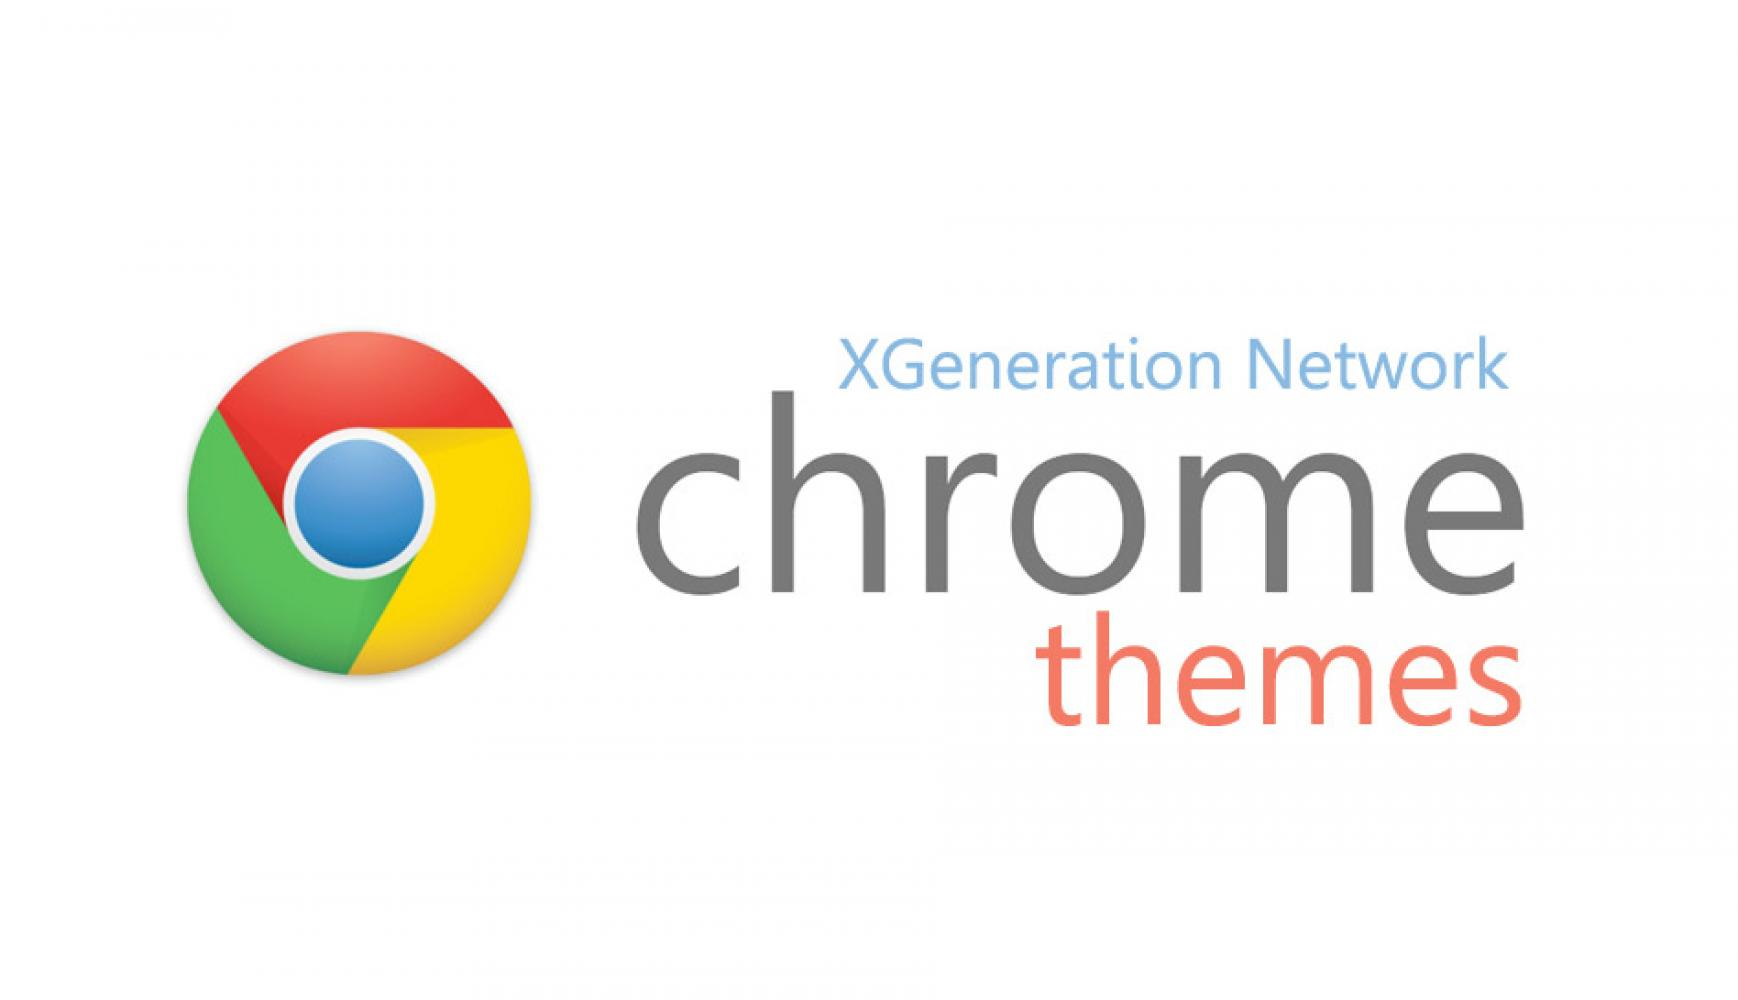 XGeneration Network Google Chrome Themes